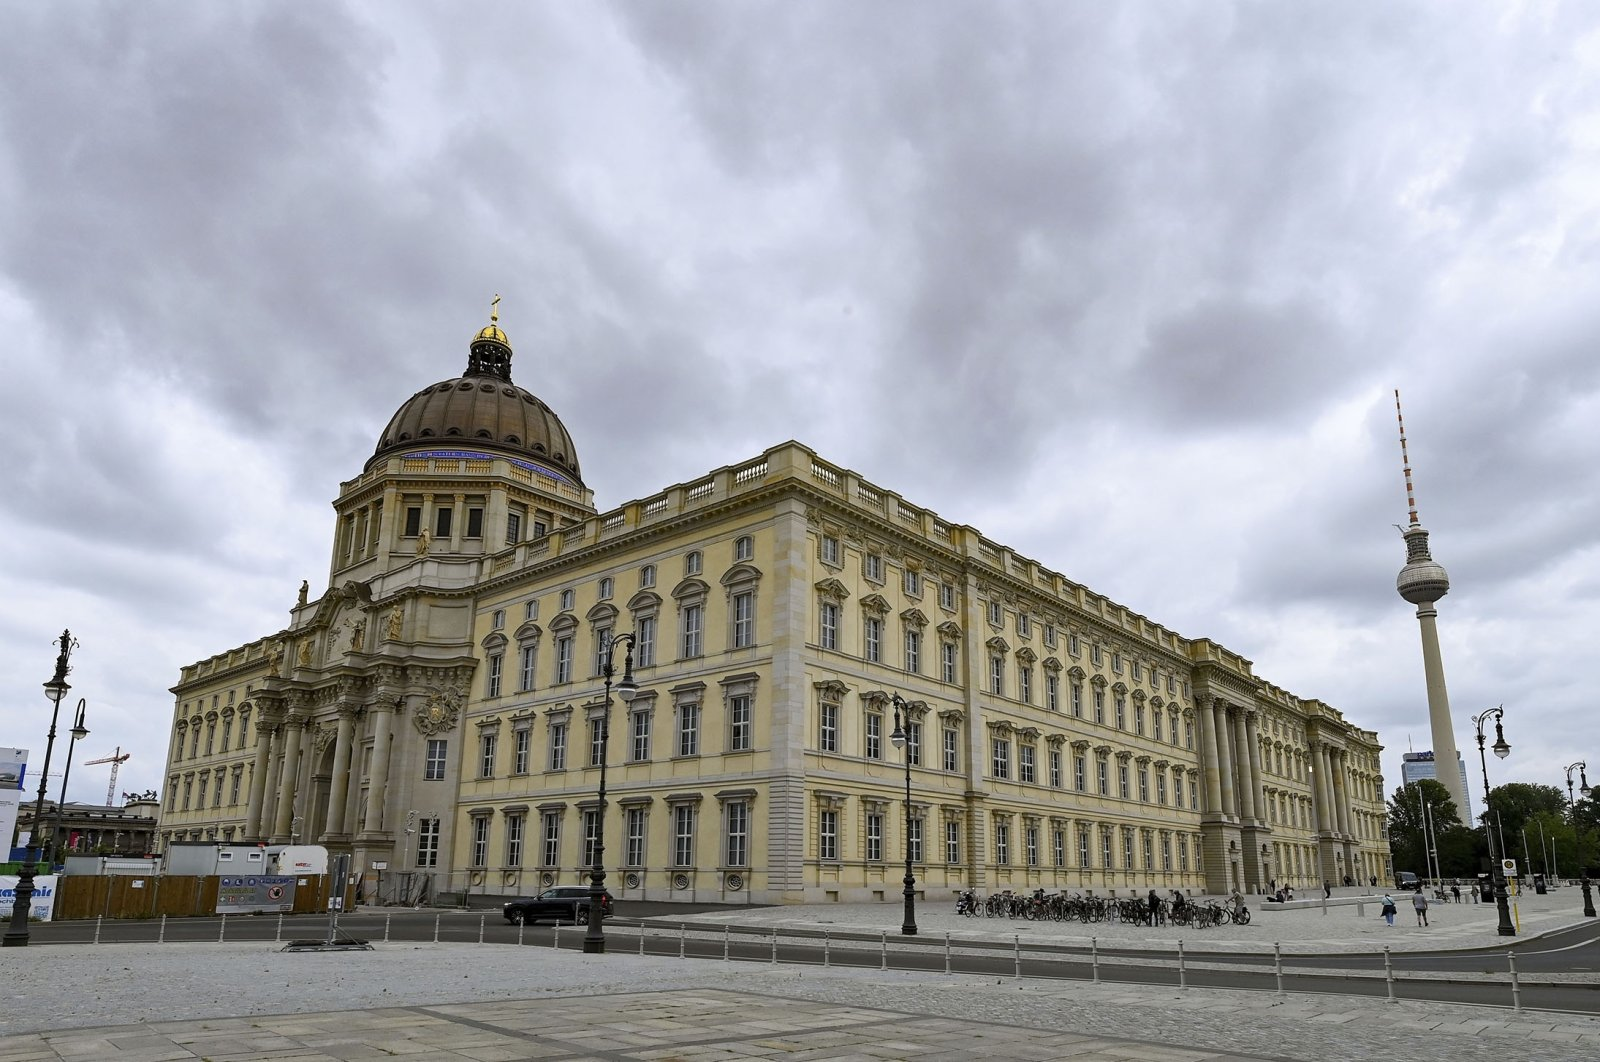 The building of the Humboldt Forum at the presentation day before the official opening in Berlin, Germany, July 19, 2021. (dpa via AP)